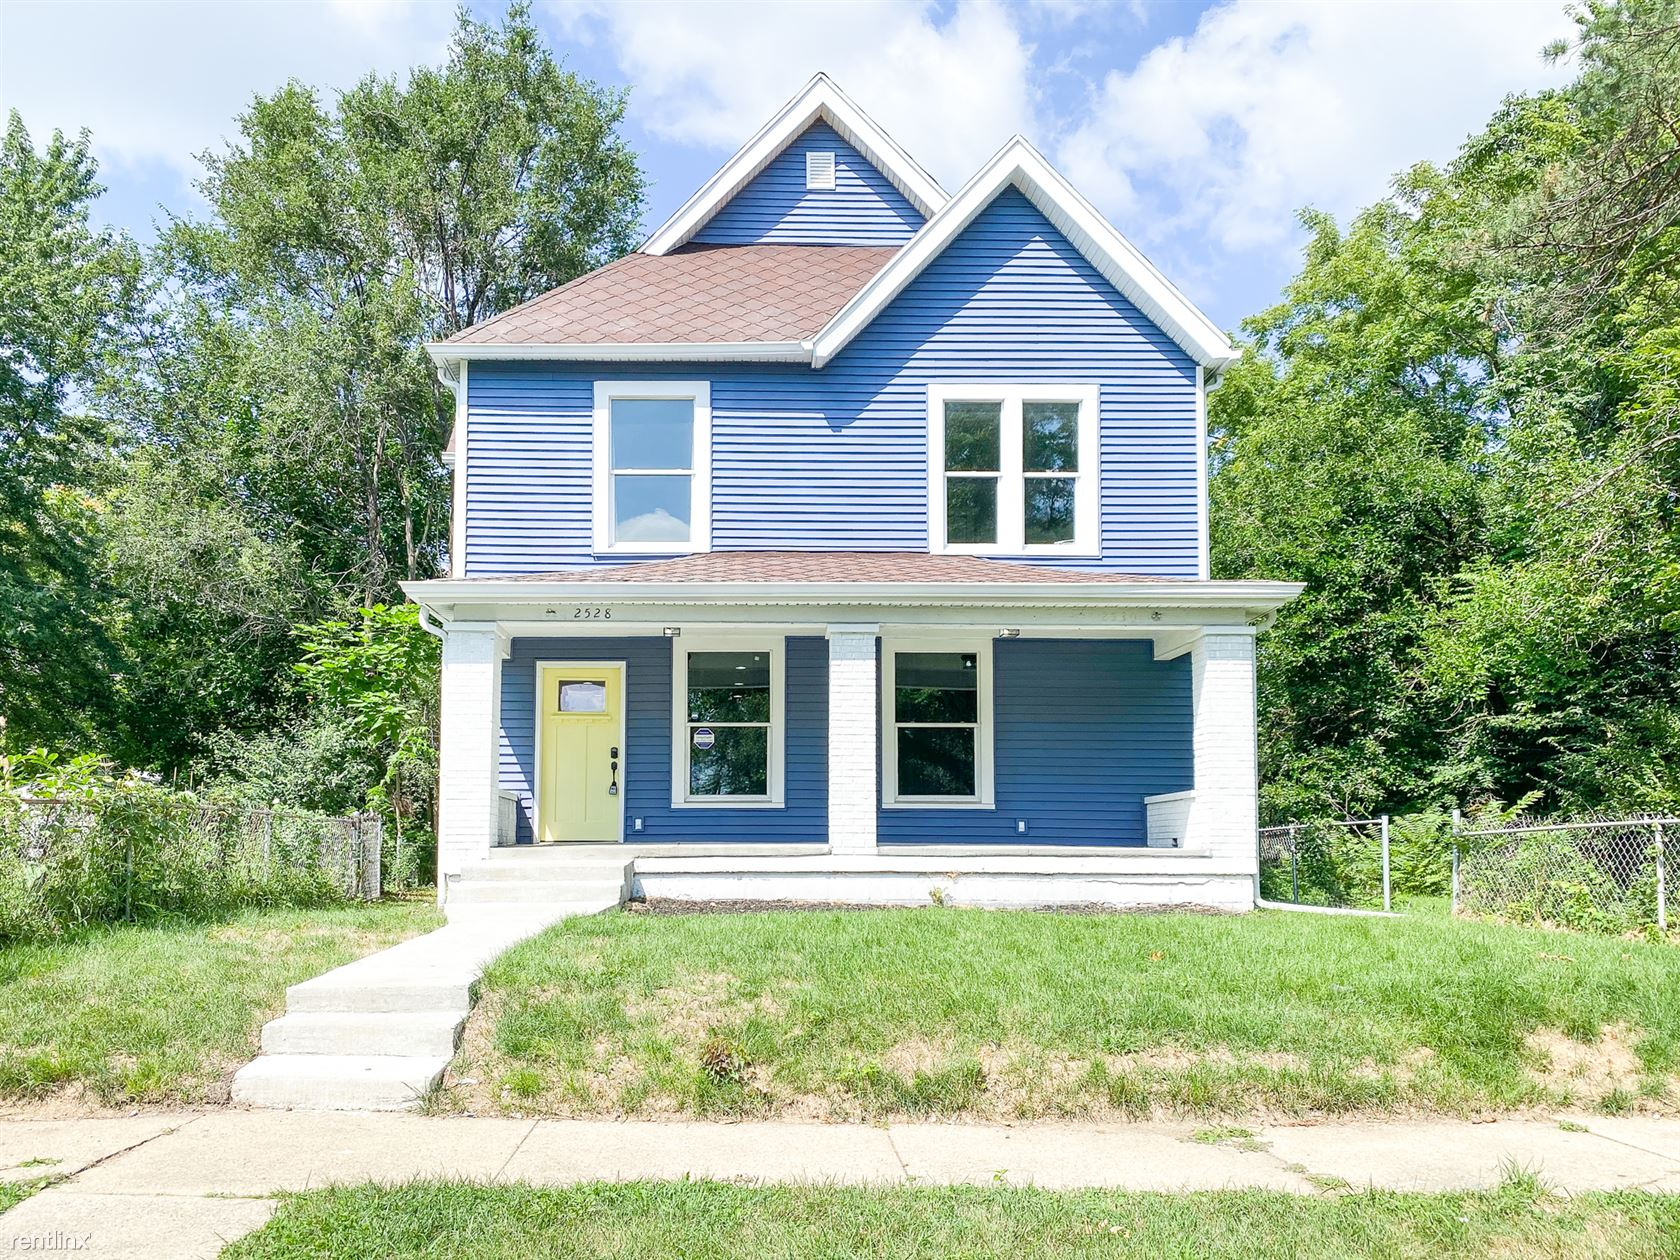 2528 Guilford Ave, Indianapolis, IN - $2,095